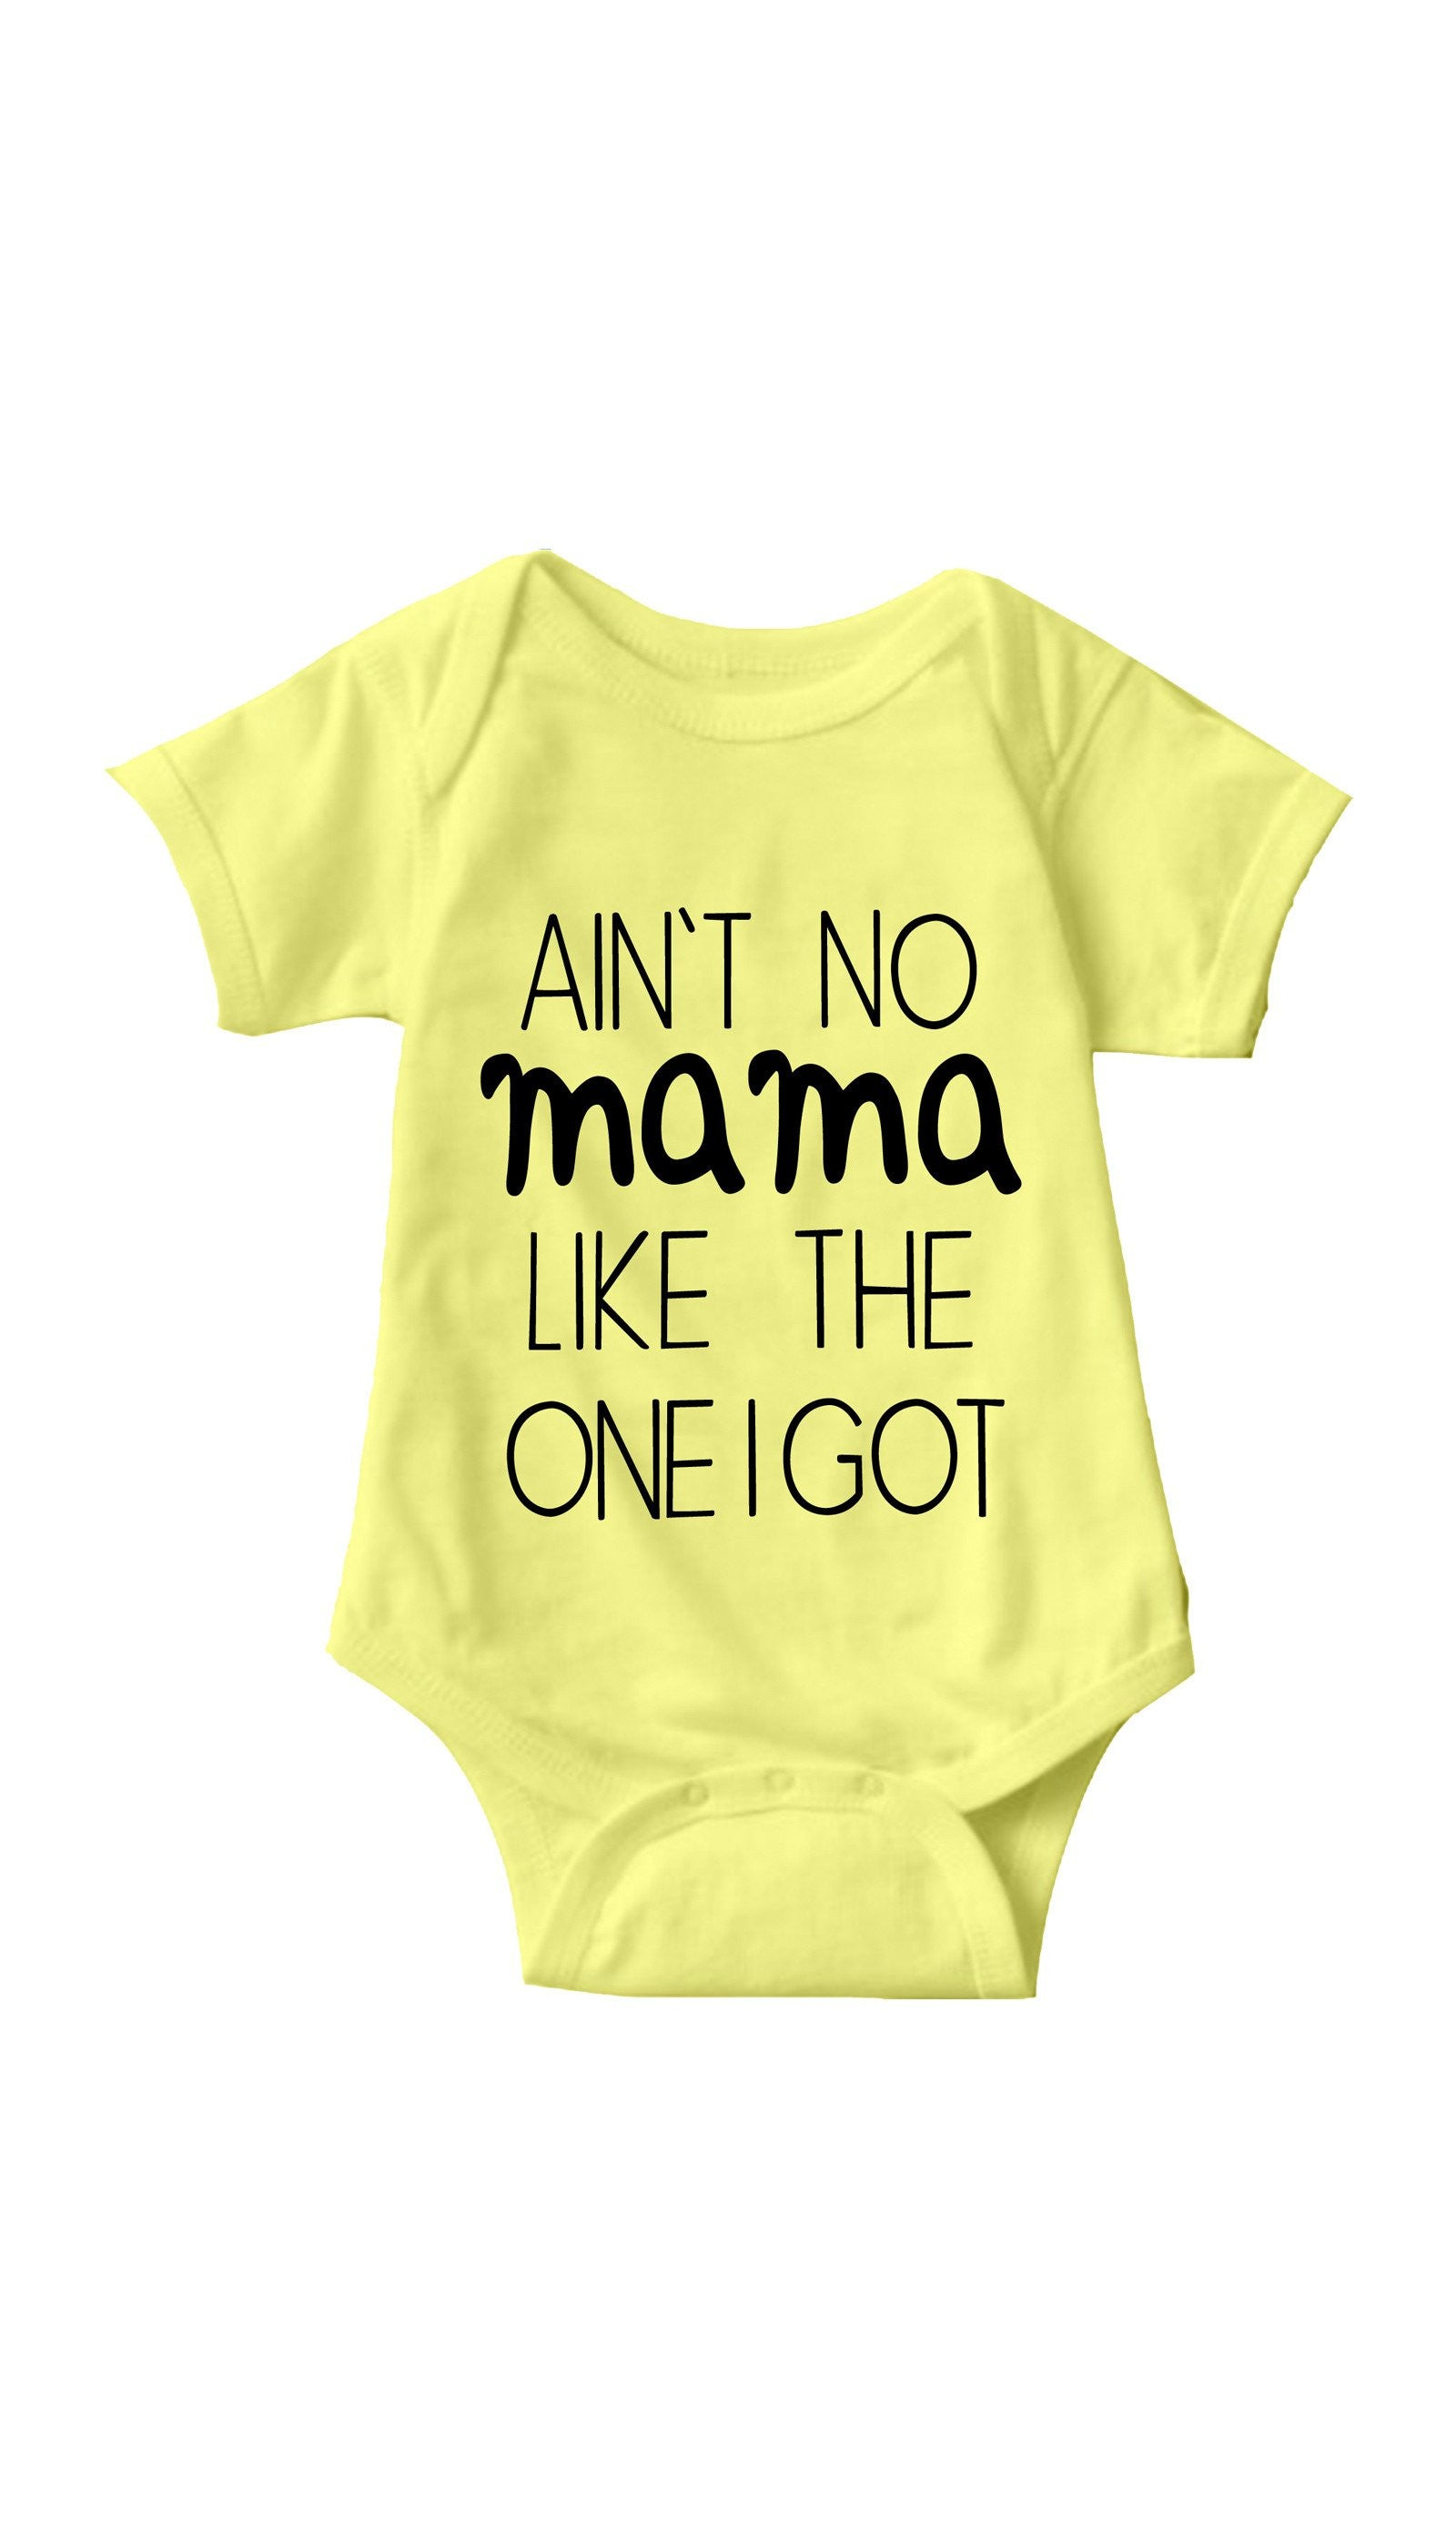 Aint No Mama Like The One I Got Yellow Infant Onesie | Sarcastic ME